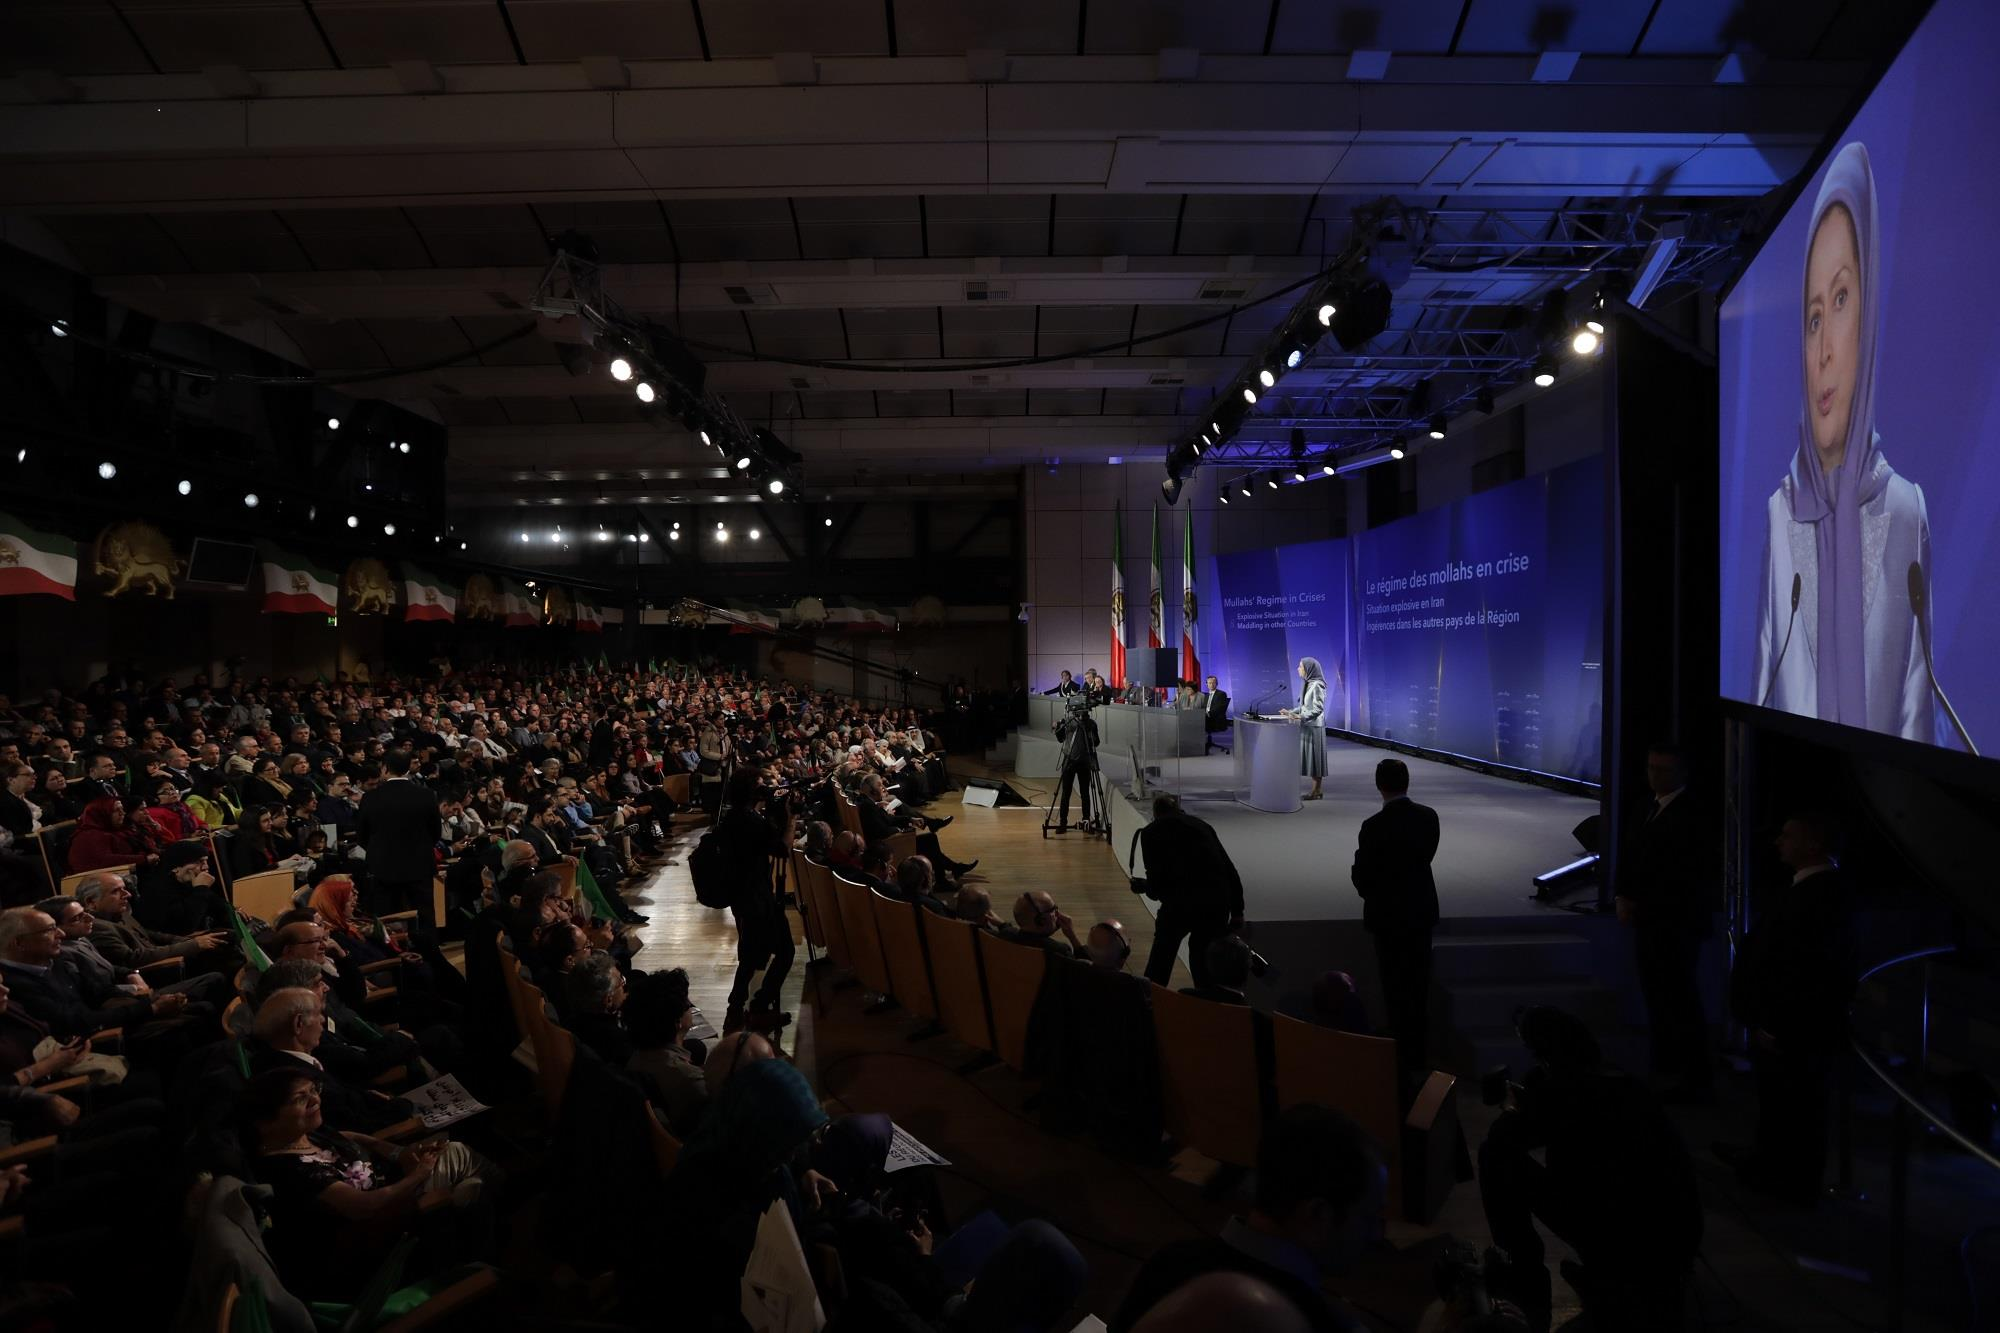 Rajavi said the international community is recognizing the need to stand up to the Iranian regime's malign activities